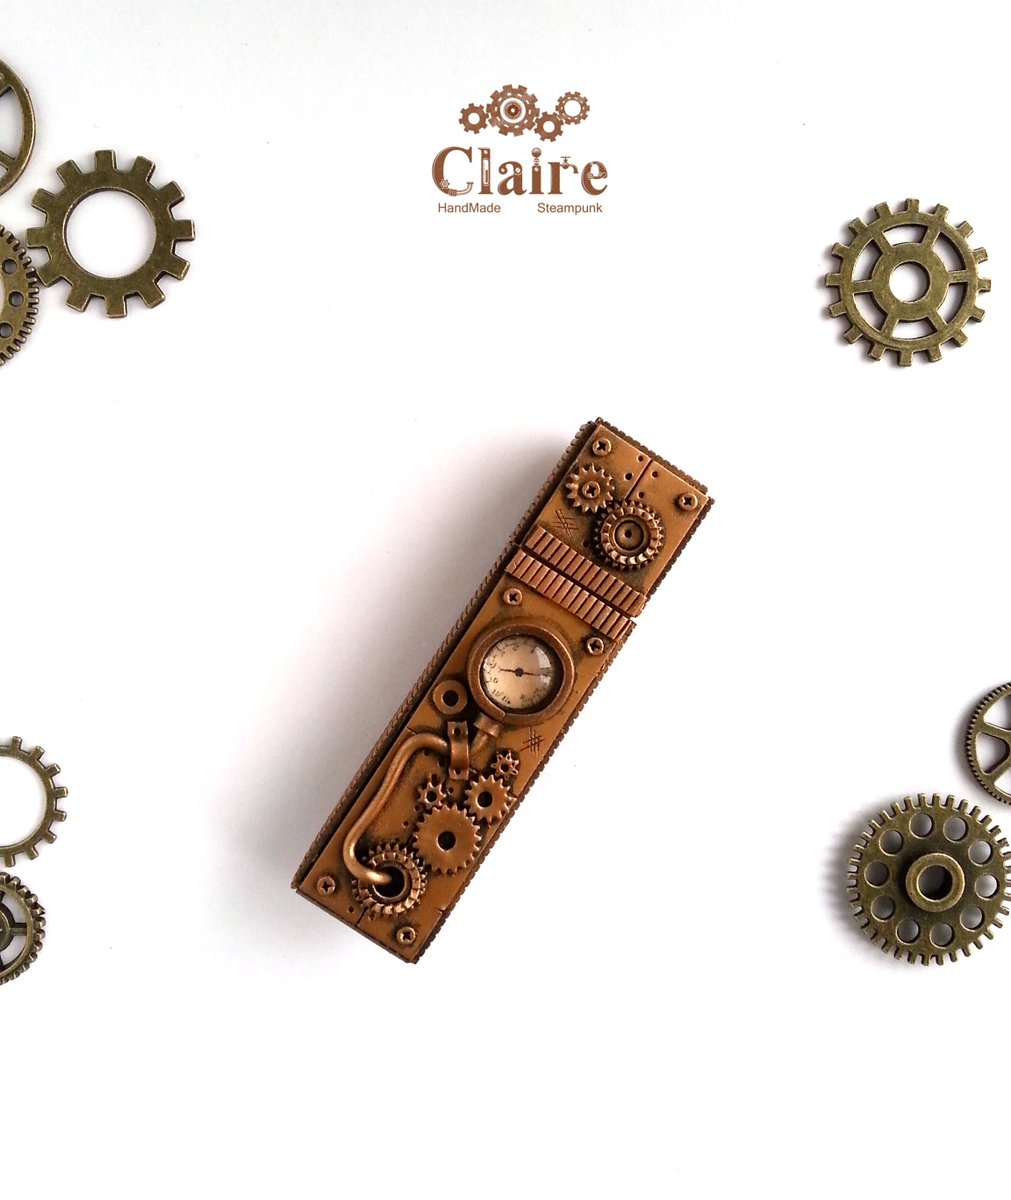 #Geek Awesome of the Day: #Steampunk #USB Flash Drive handmade by @SvetlanaLikhova #Etsy v @joshuaswifter1 #SamaGeek